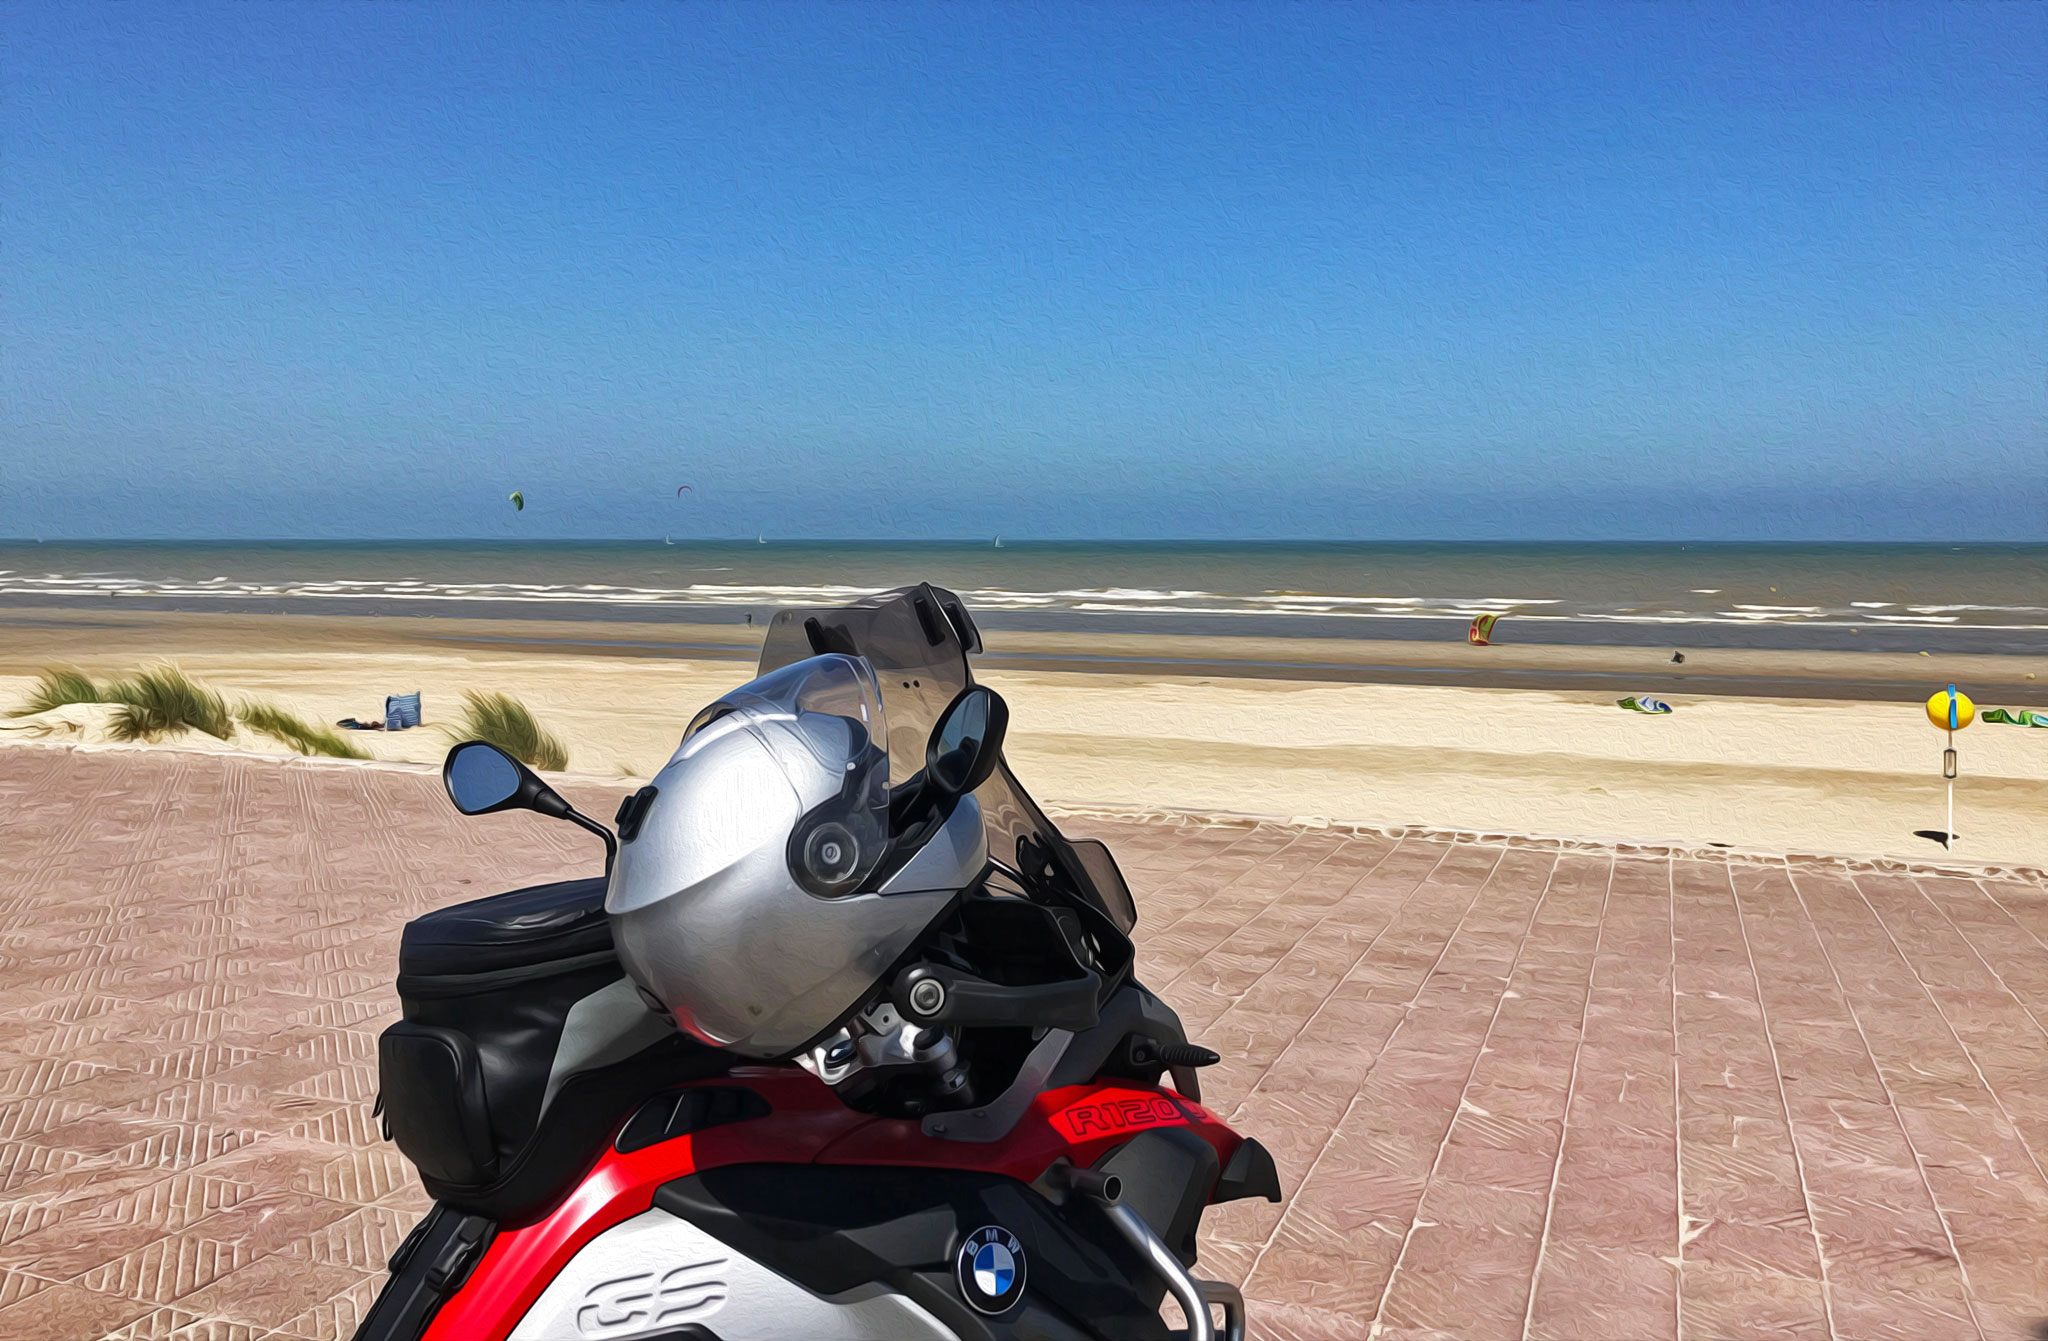 Going east: at the beaches of Dunkirk